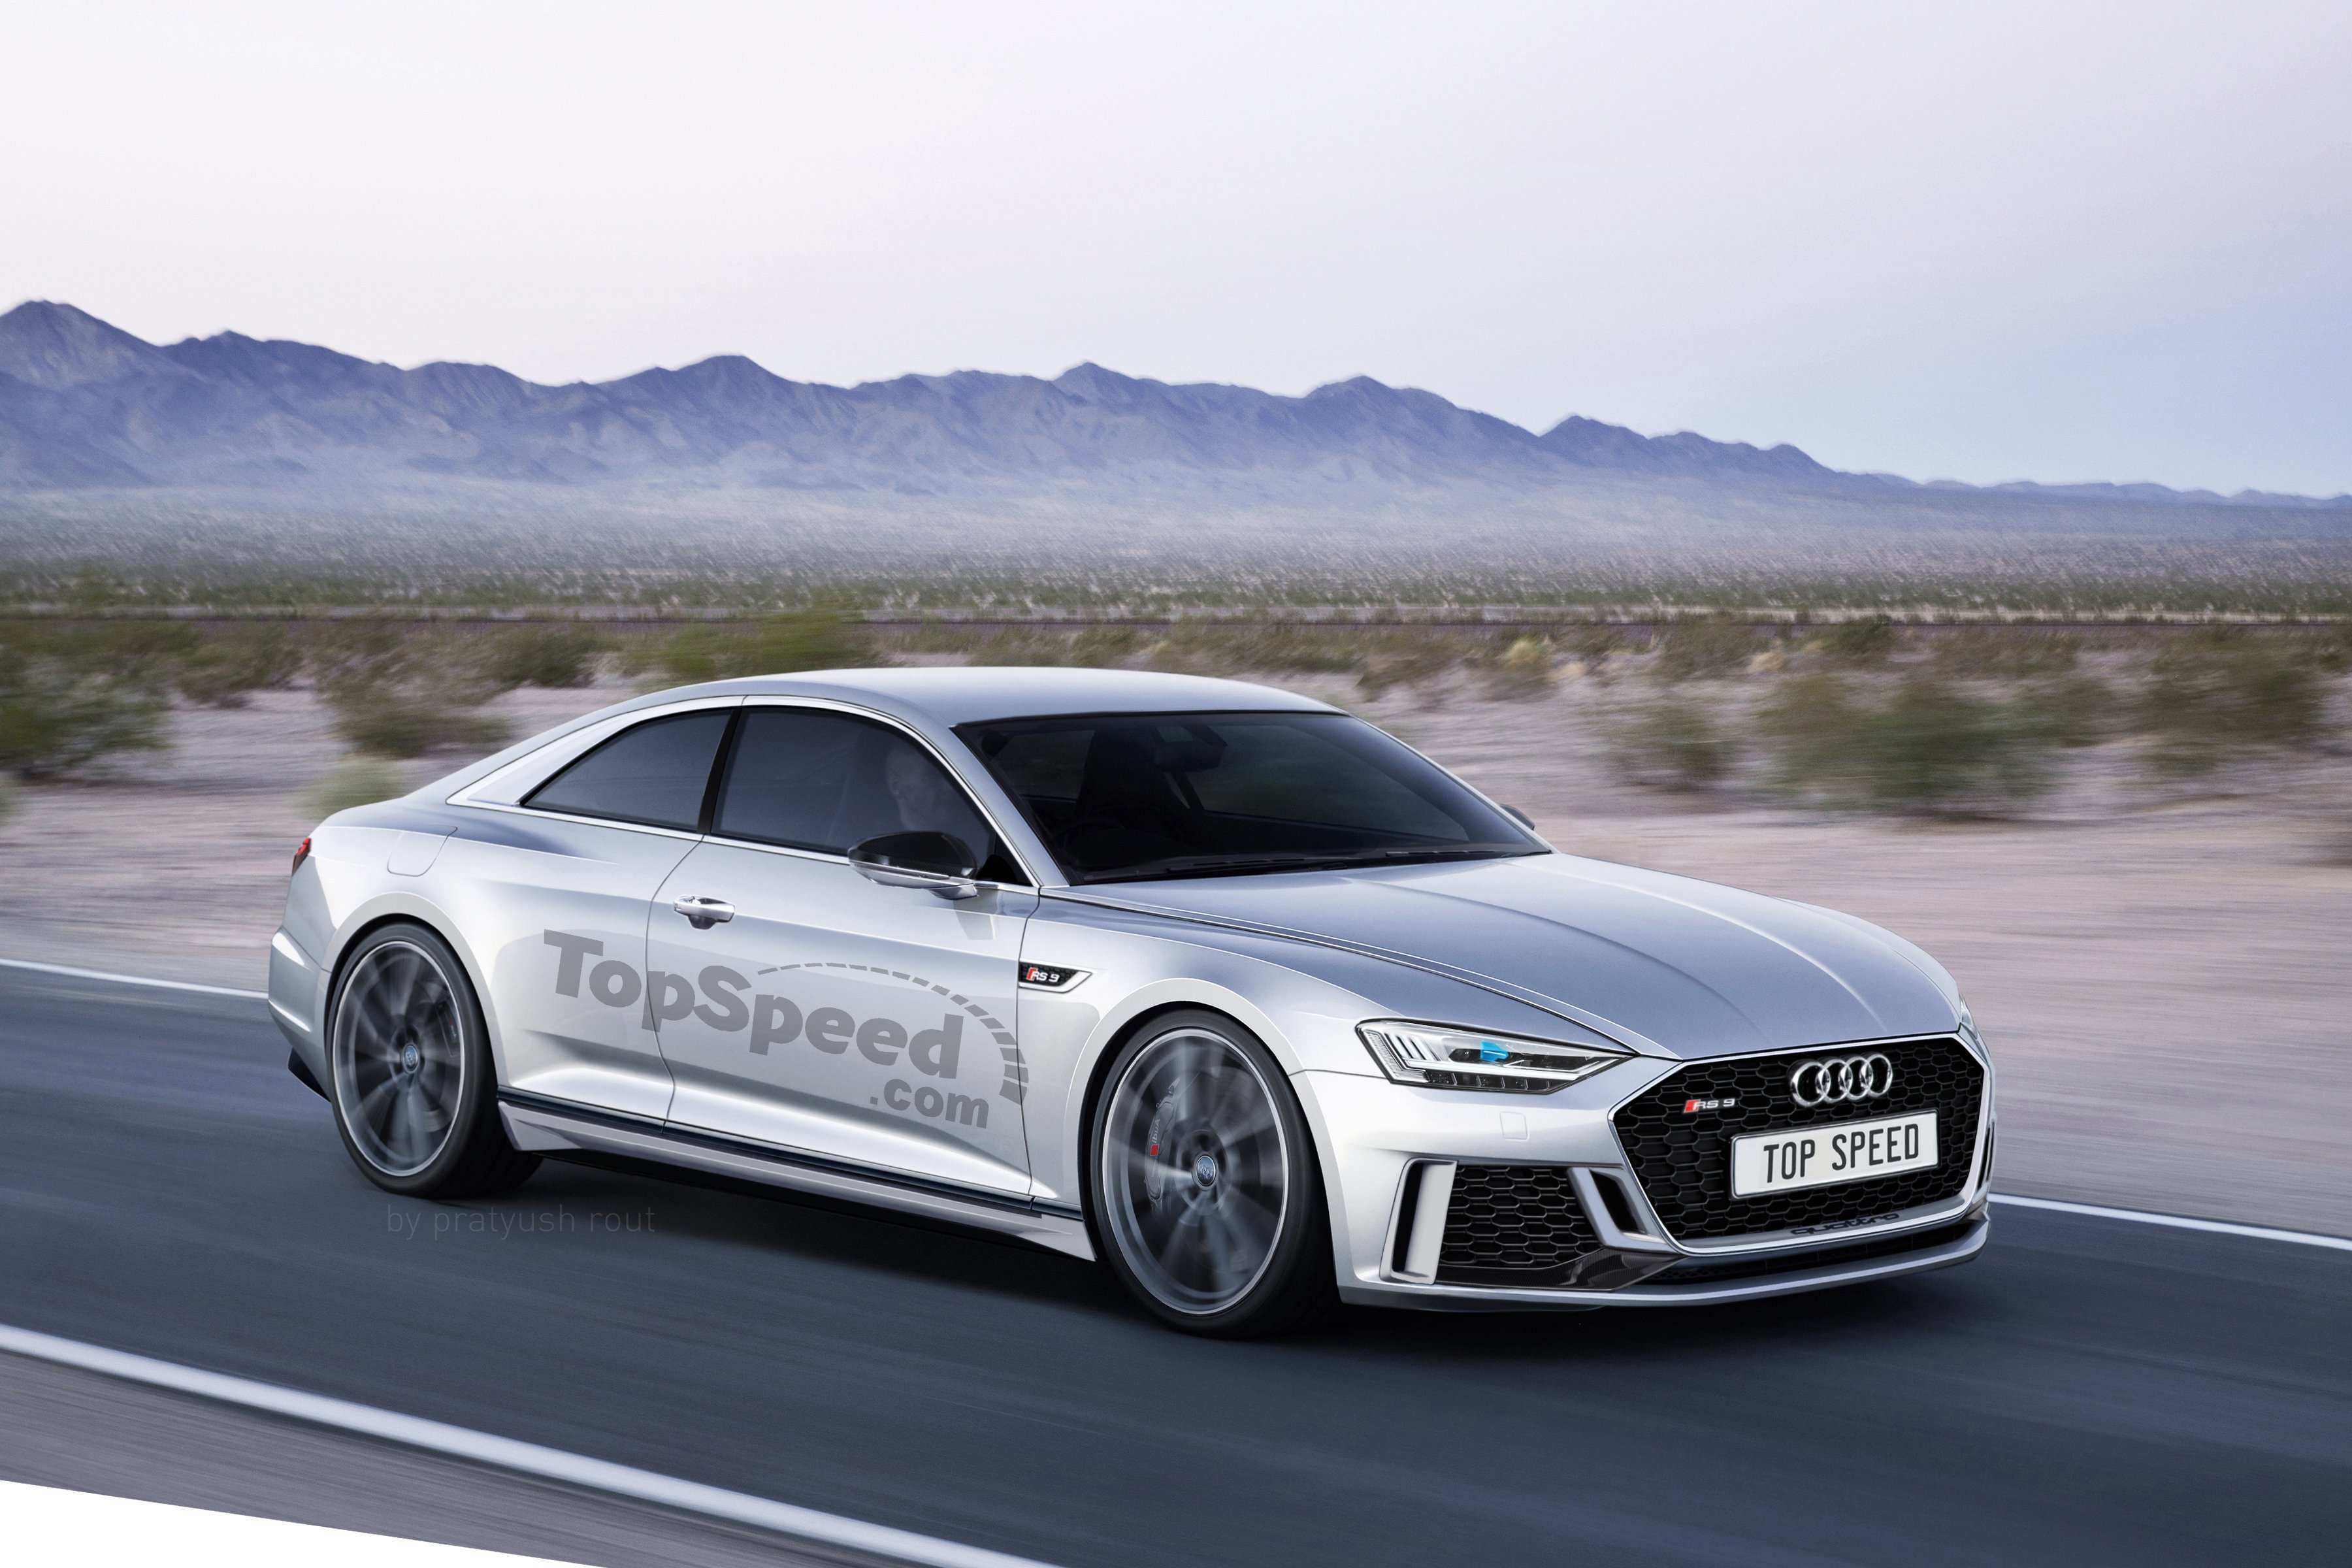 80 New New Fastest Audi 2019 Concept Rumors with New Fastest Audi 2019 Concept